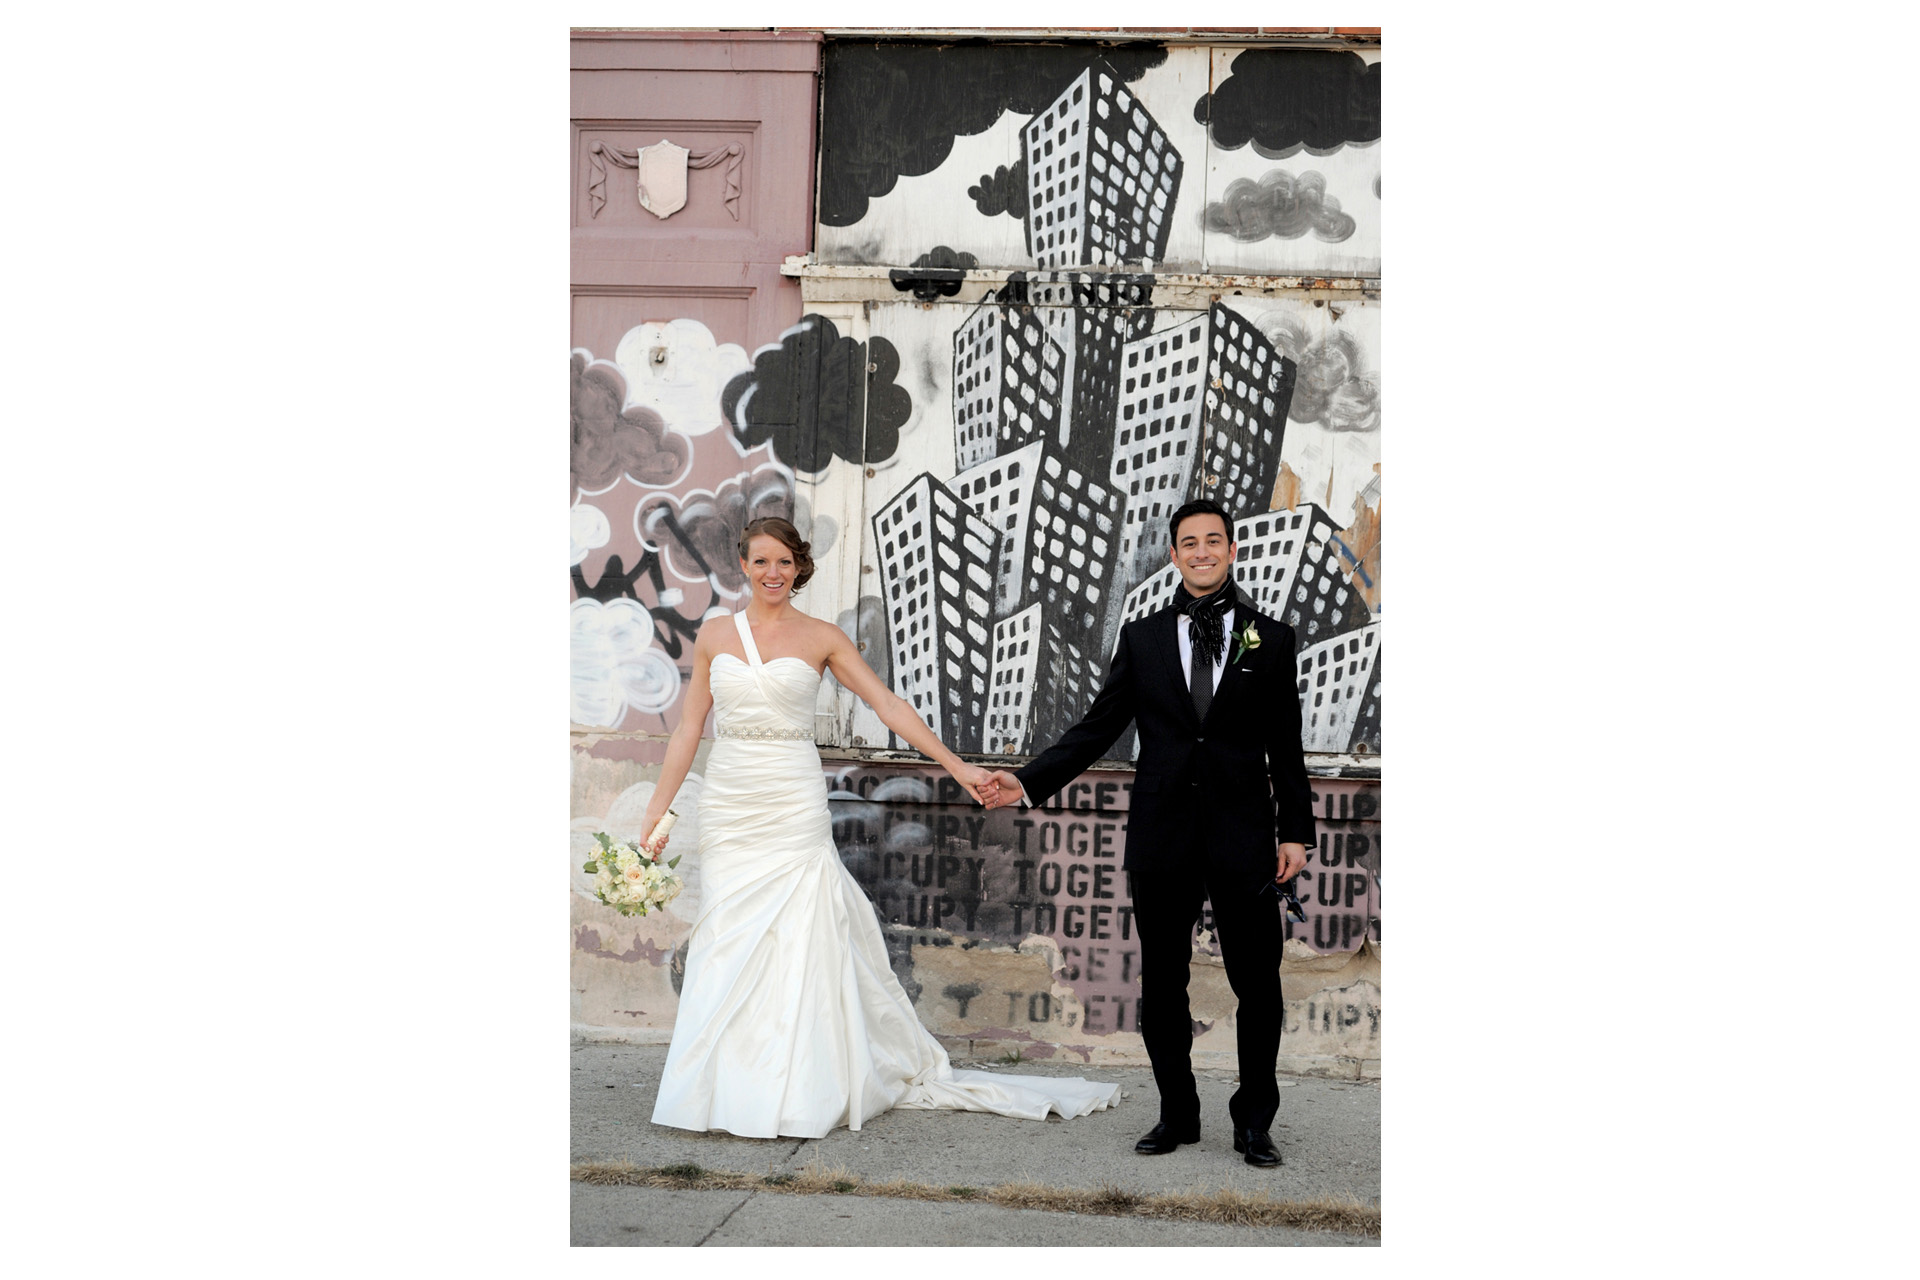 The Historic church Sweetest Heart of Mary and the Dearborn Inn of Detroit's historic church in Detroit and Dearborn, Michigan wedding photographer's photo of the couple near the Detroit's historic train station for wedding photos in Detroit, Michigan with local graffiti art.